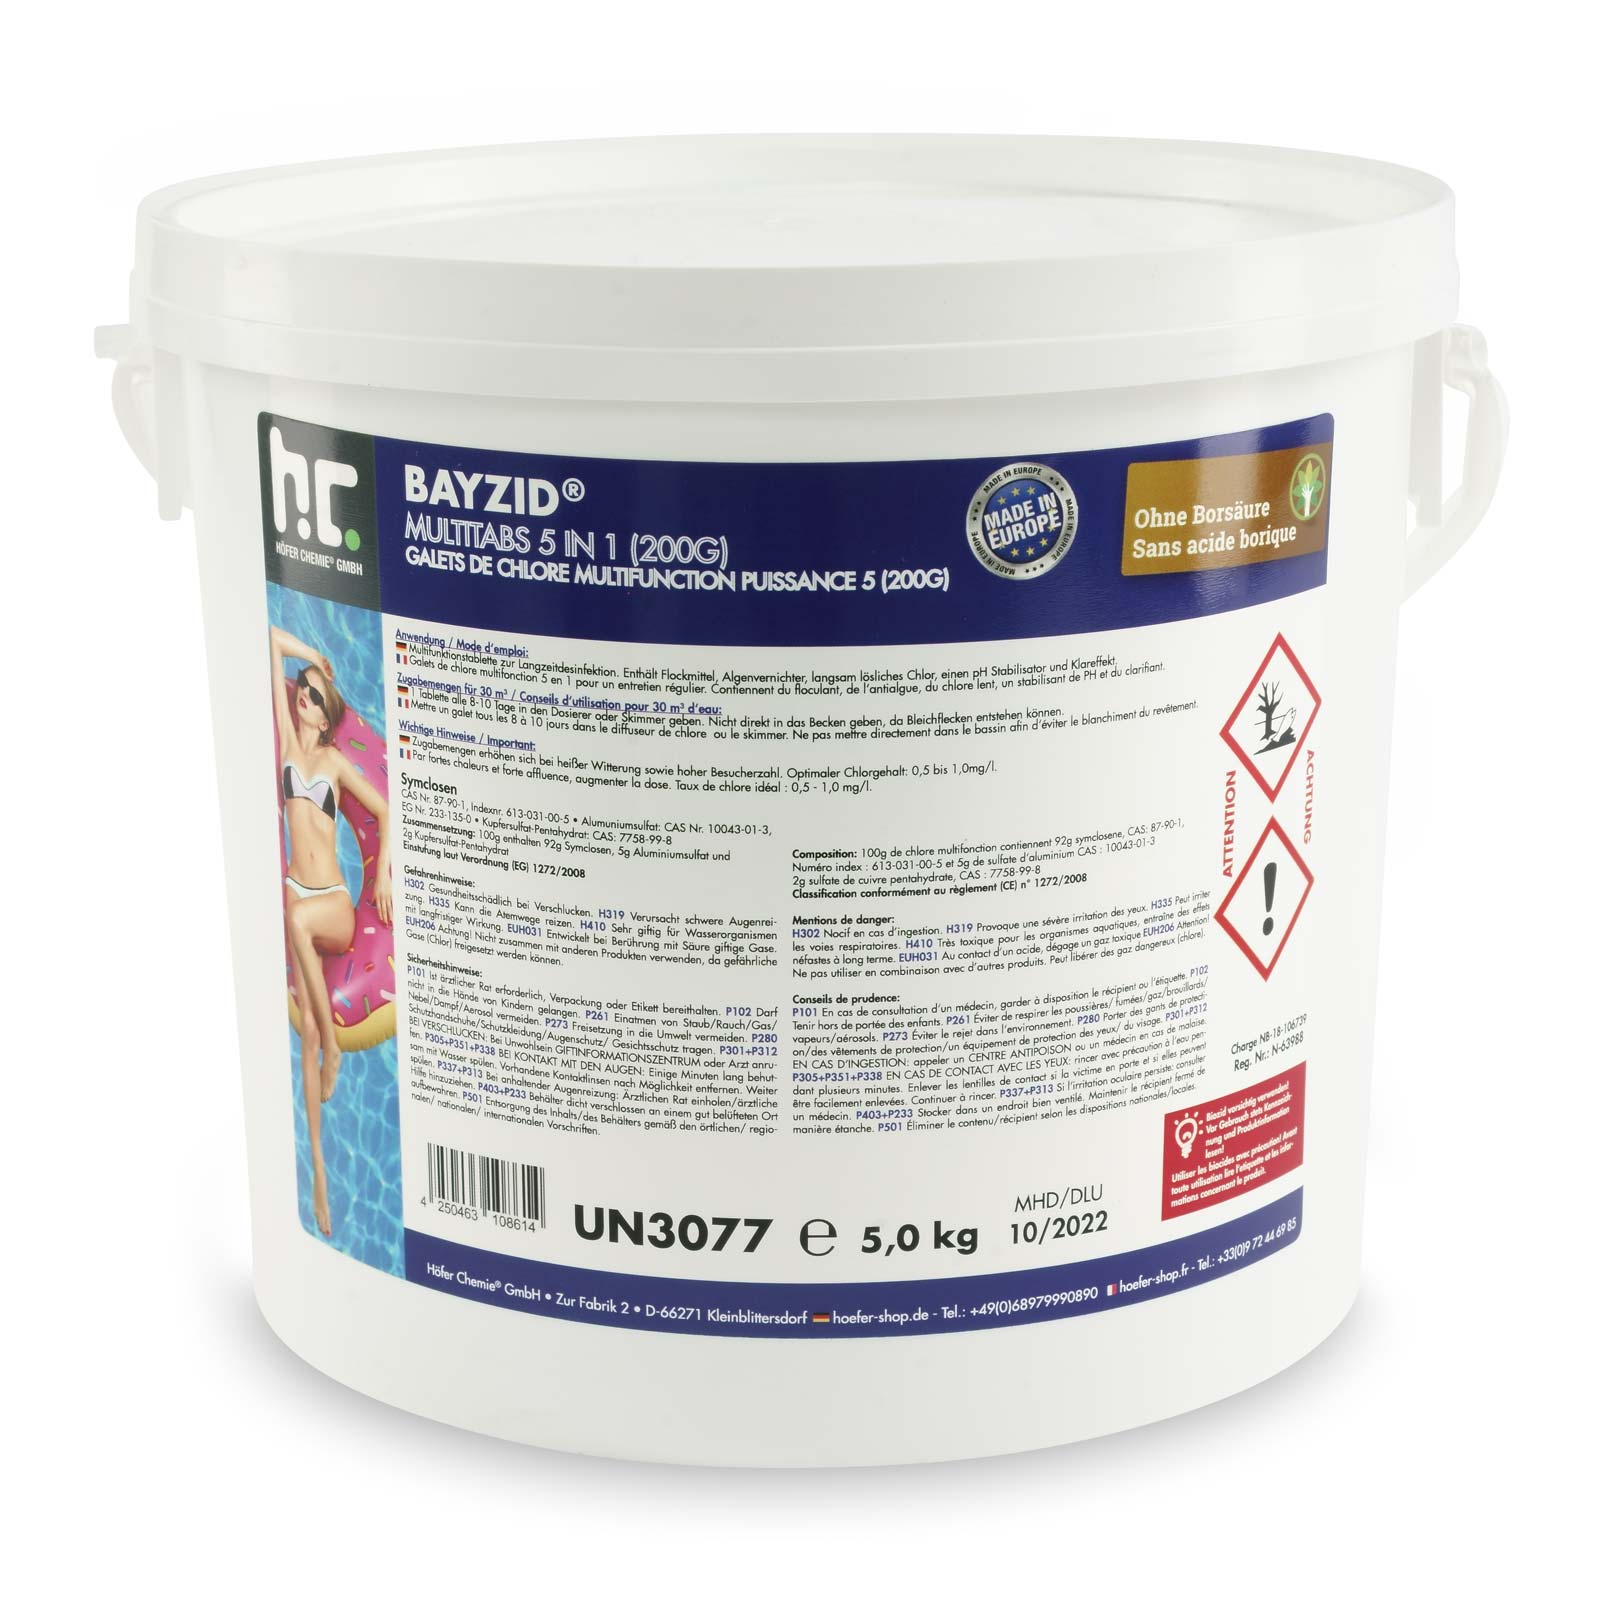 Flockkartusche Pool Pflege 5 Kg Bayzid Multitabs 200g 5in1 Für Pools